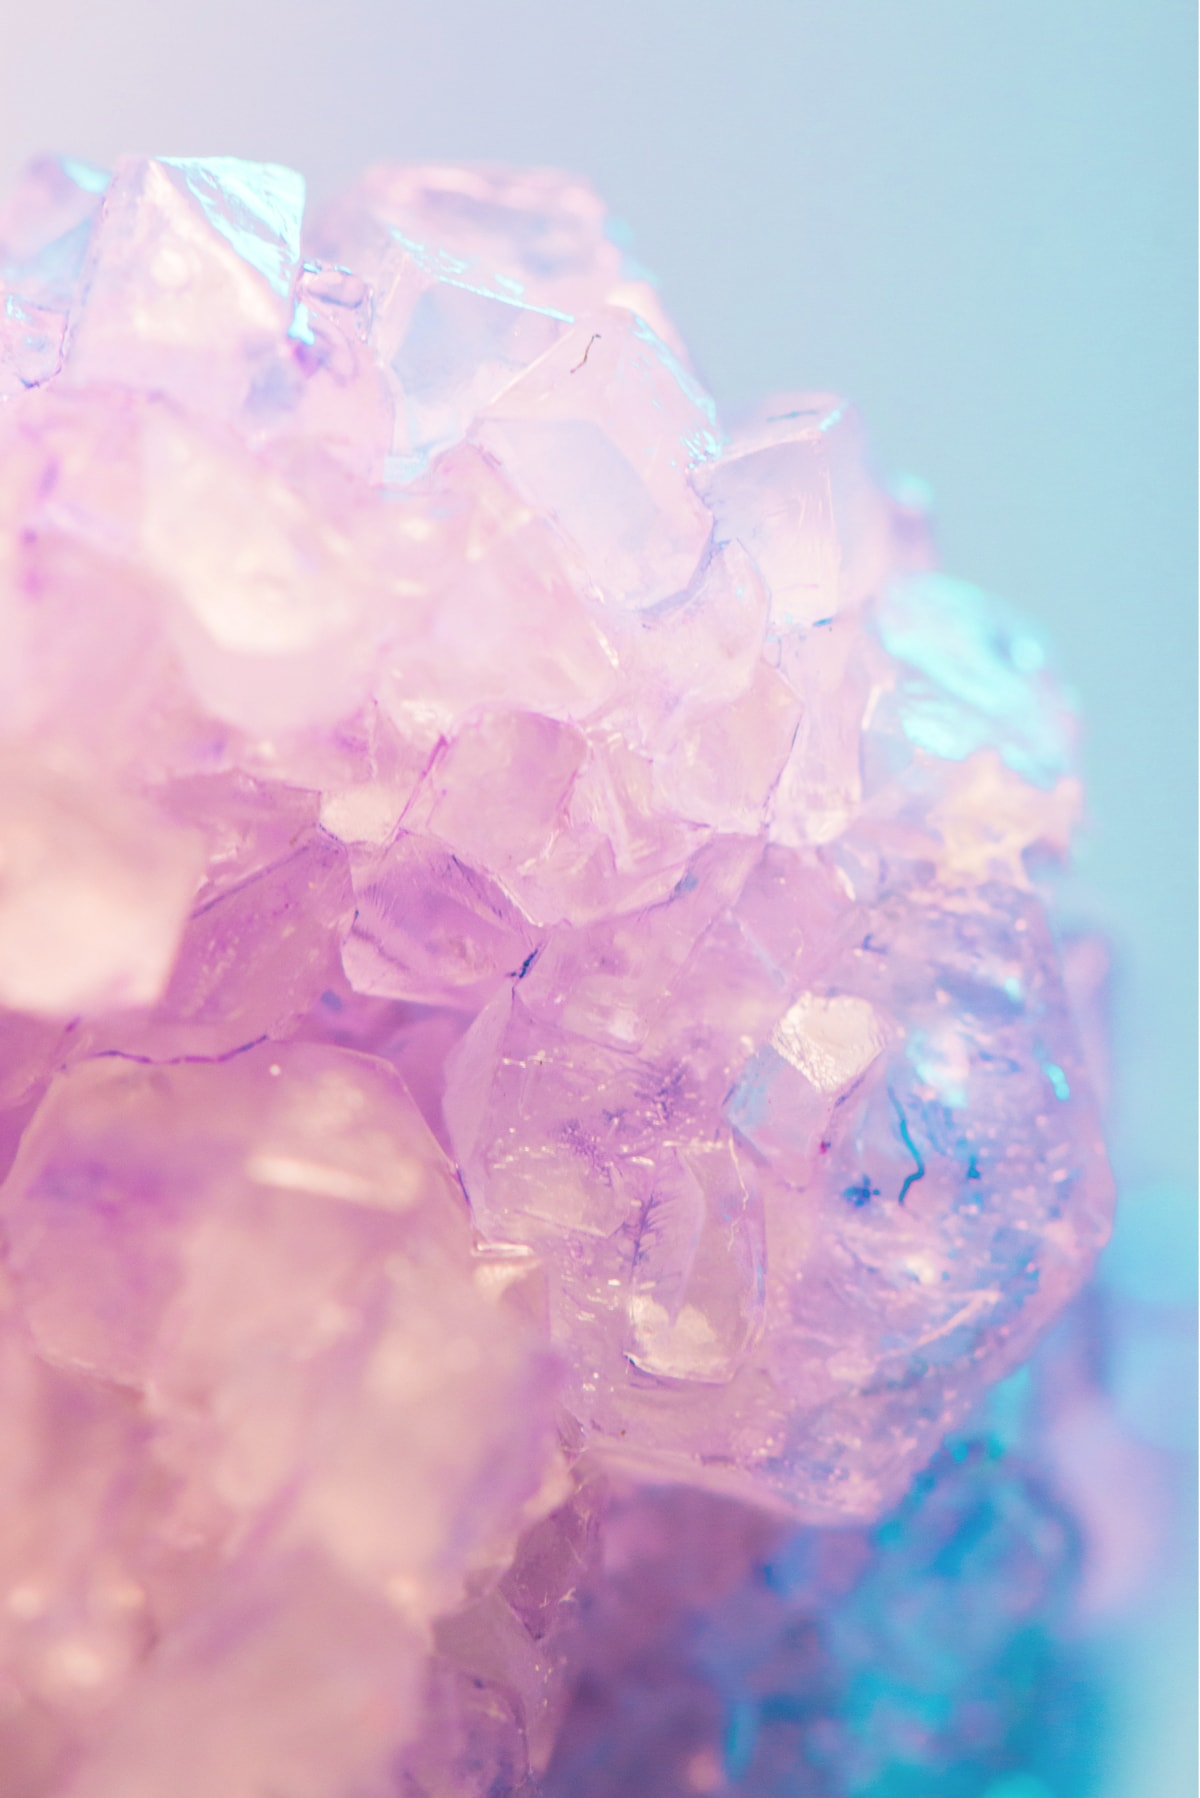 Pink and blue crystals